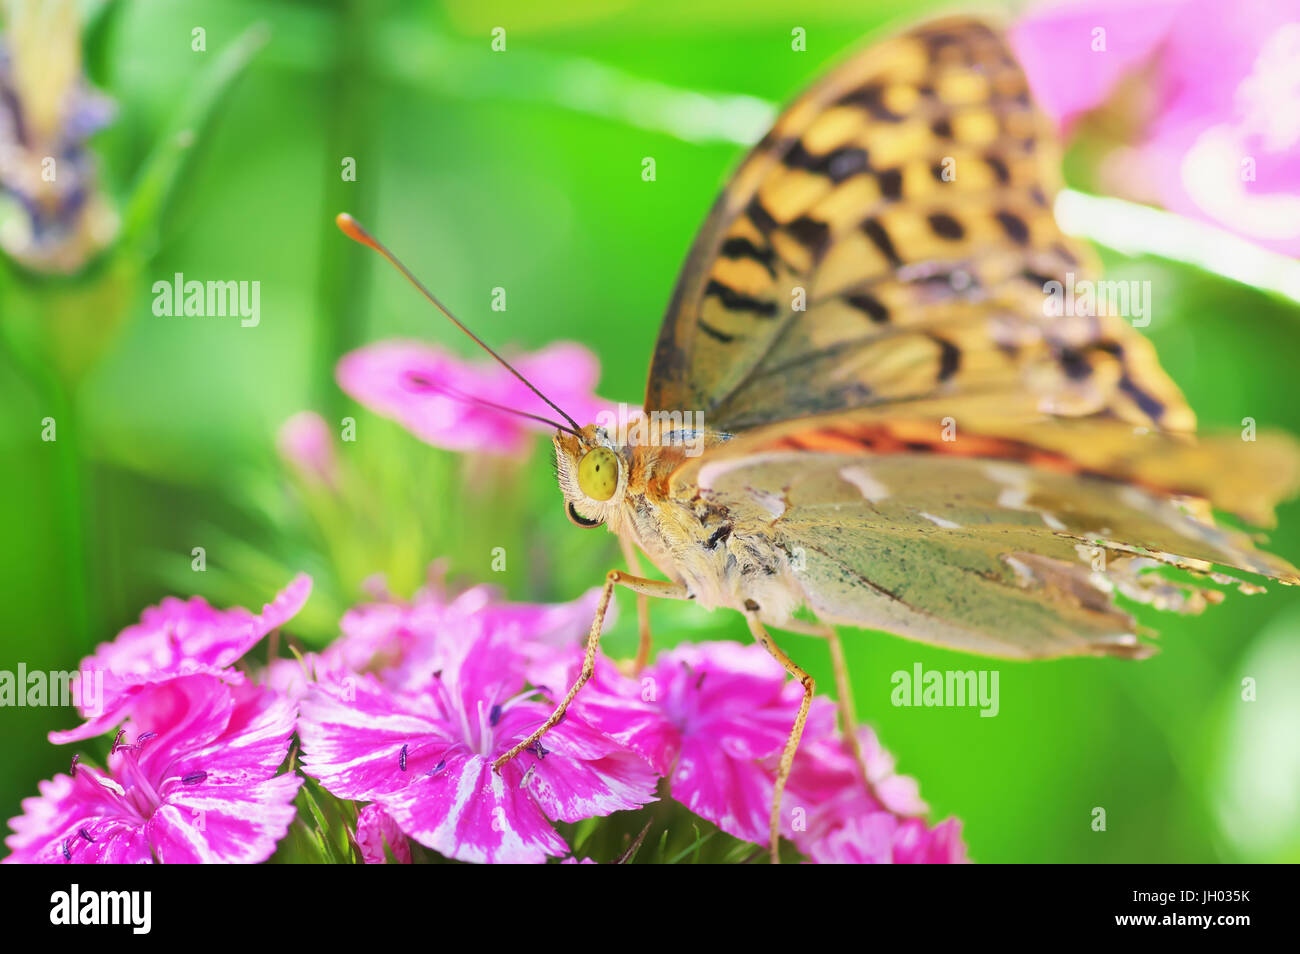 9d995f3f5 Painted lady butterfly on red flowers. Macro close up of a colourful  butterfly (Vanessa